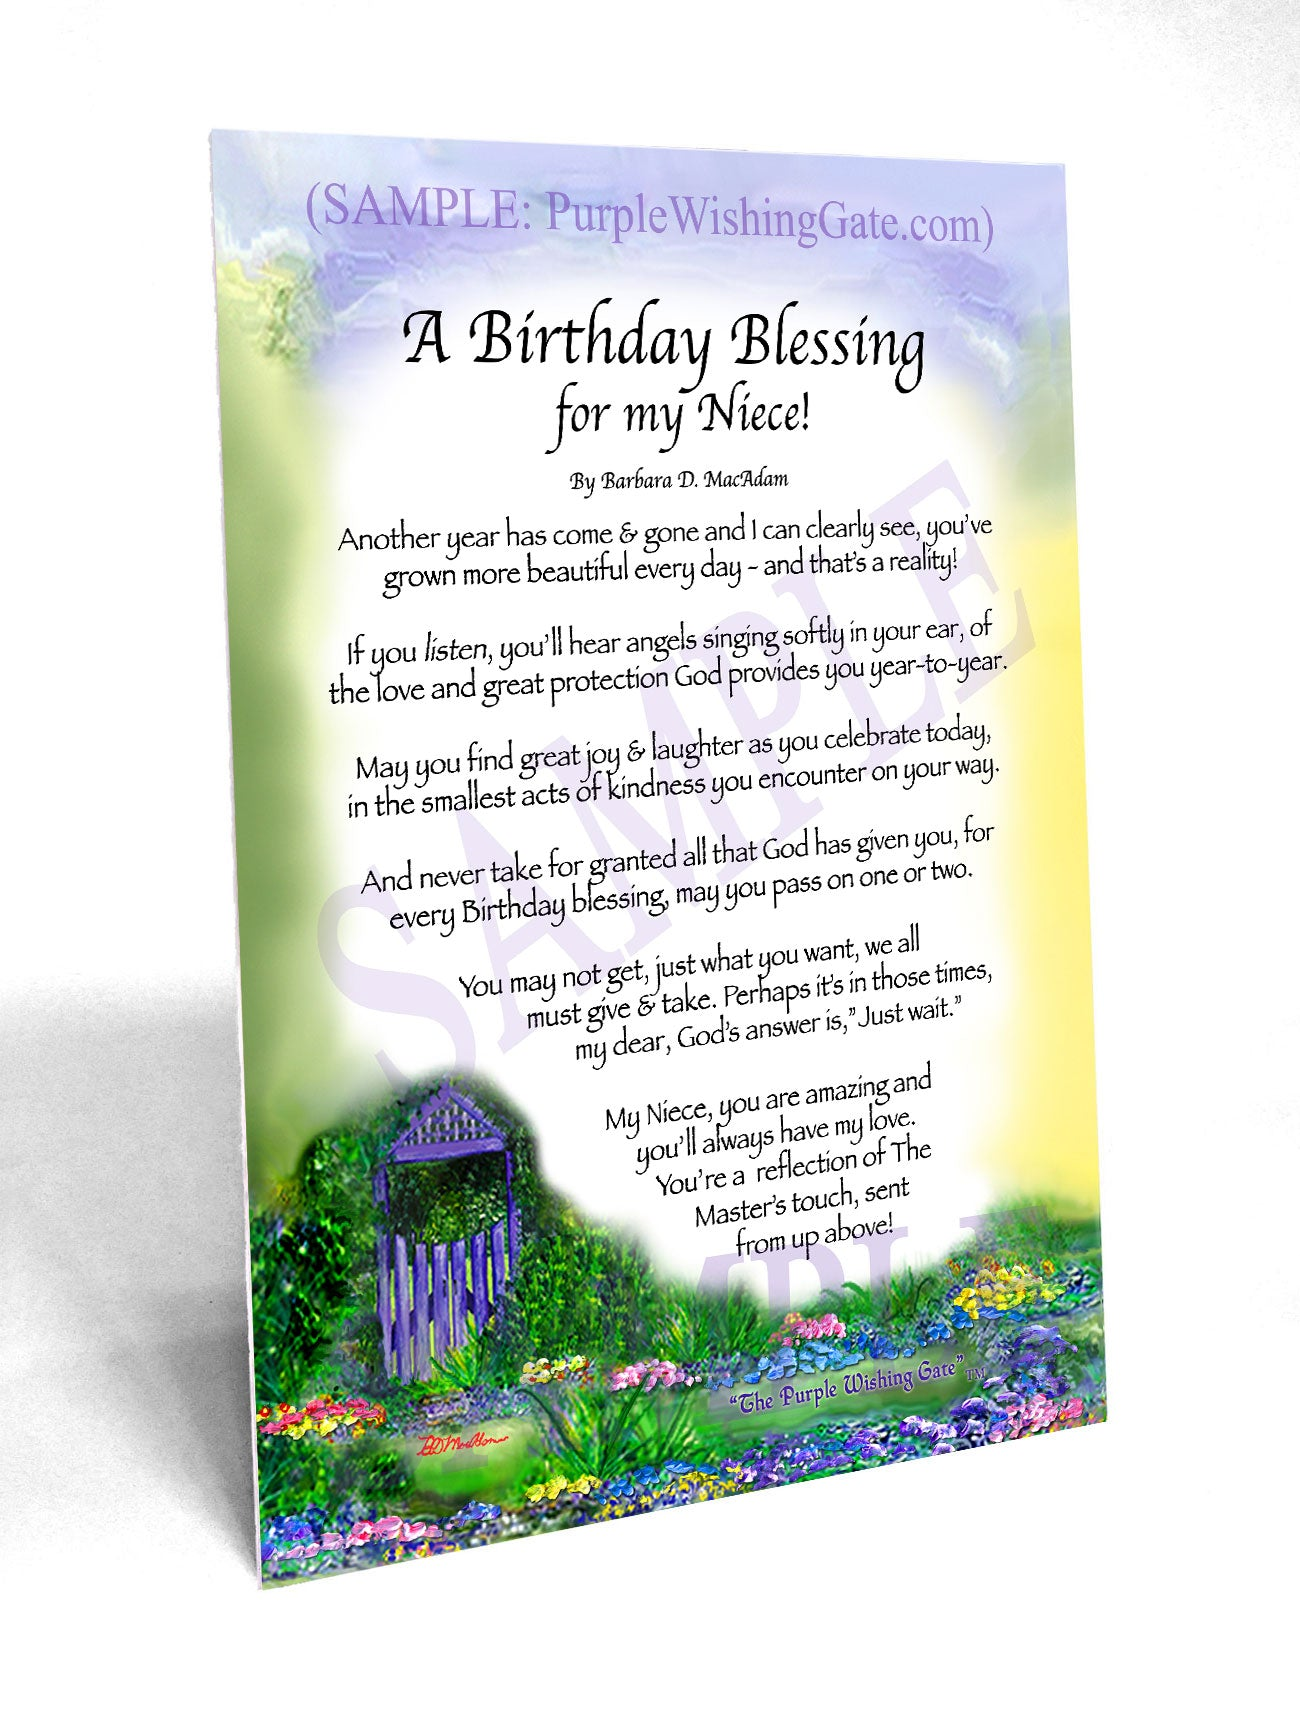 A Birthday Blessing for my Niece! - Birthday Gift - PurpleWishingGate.com